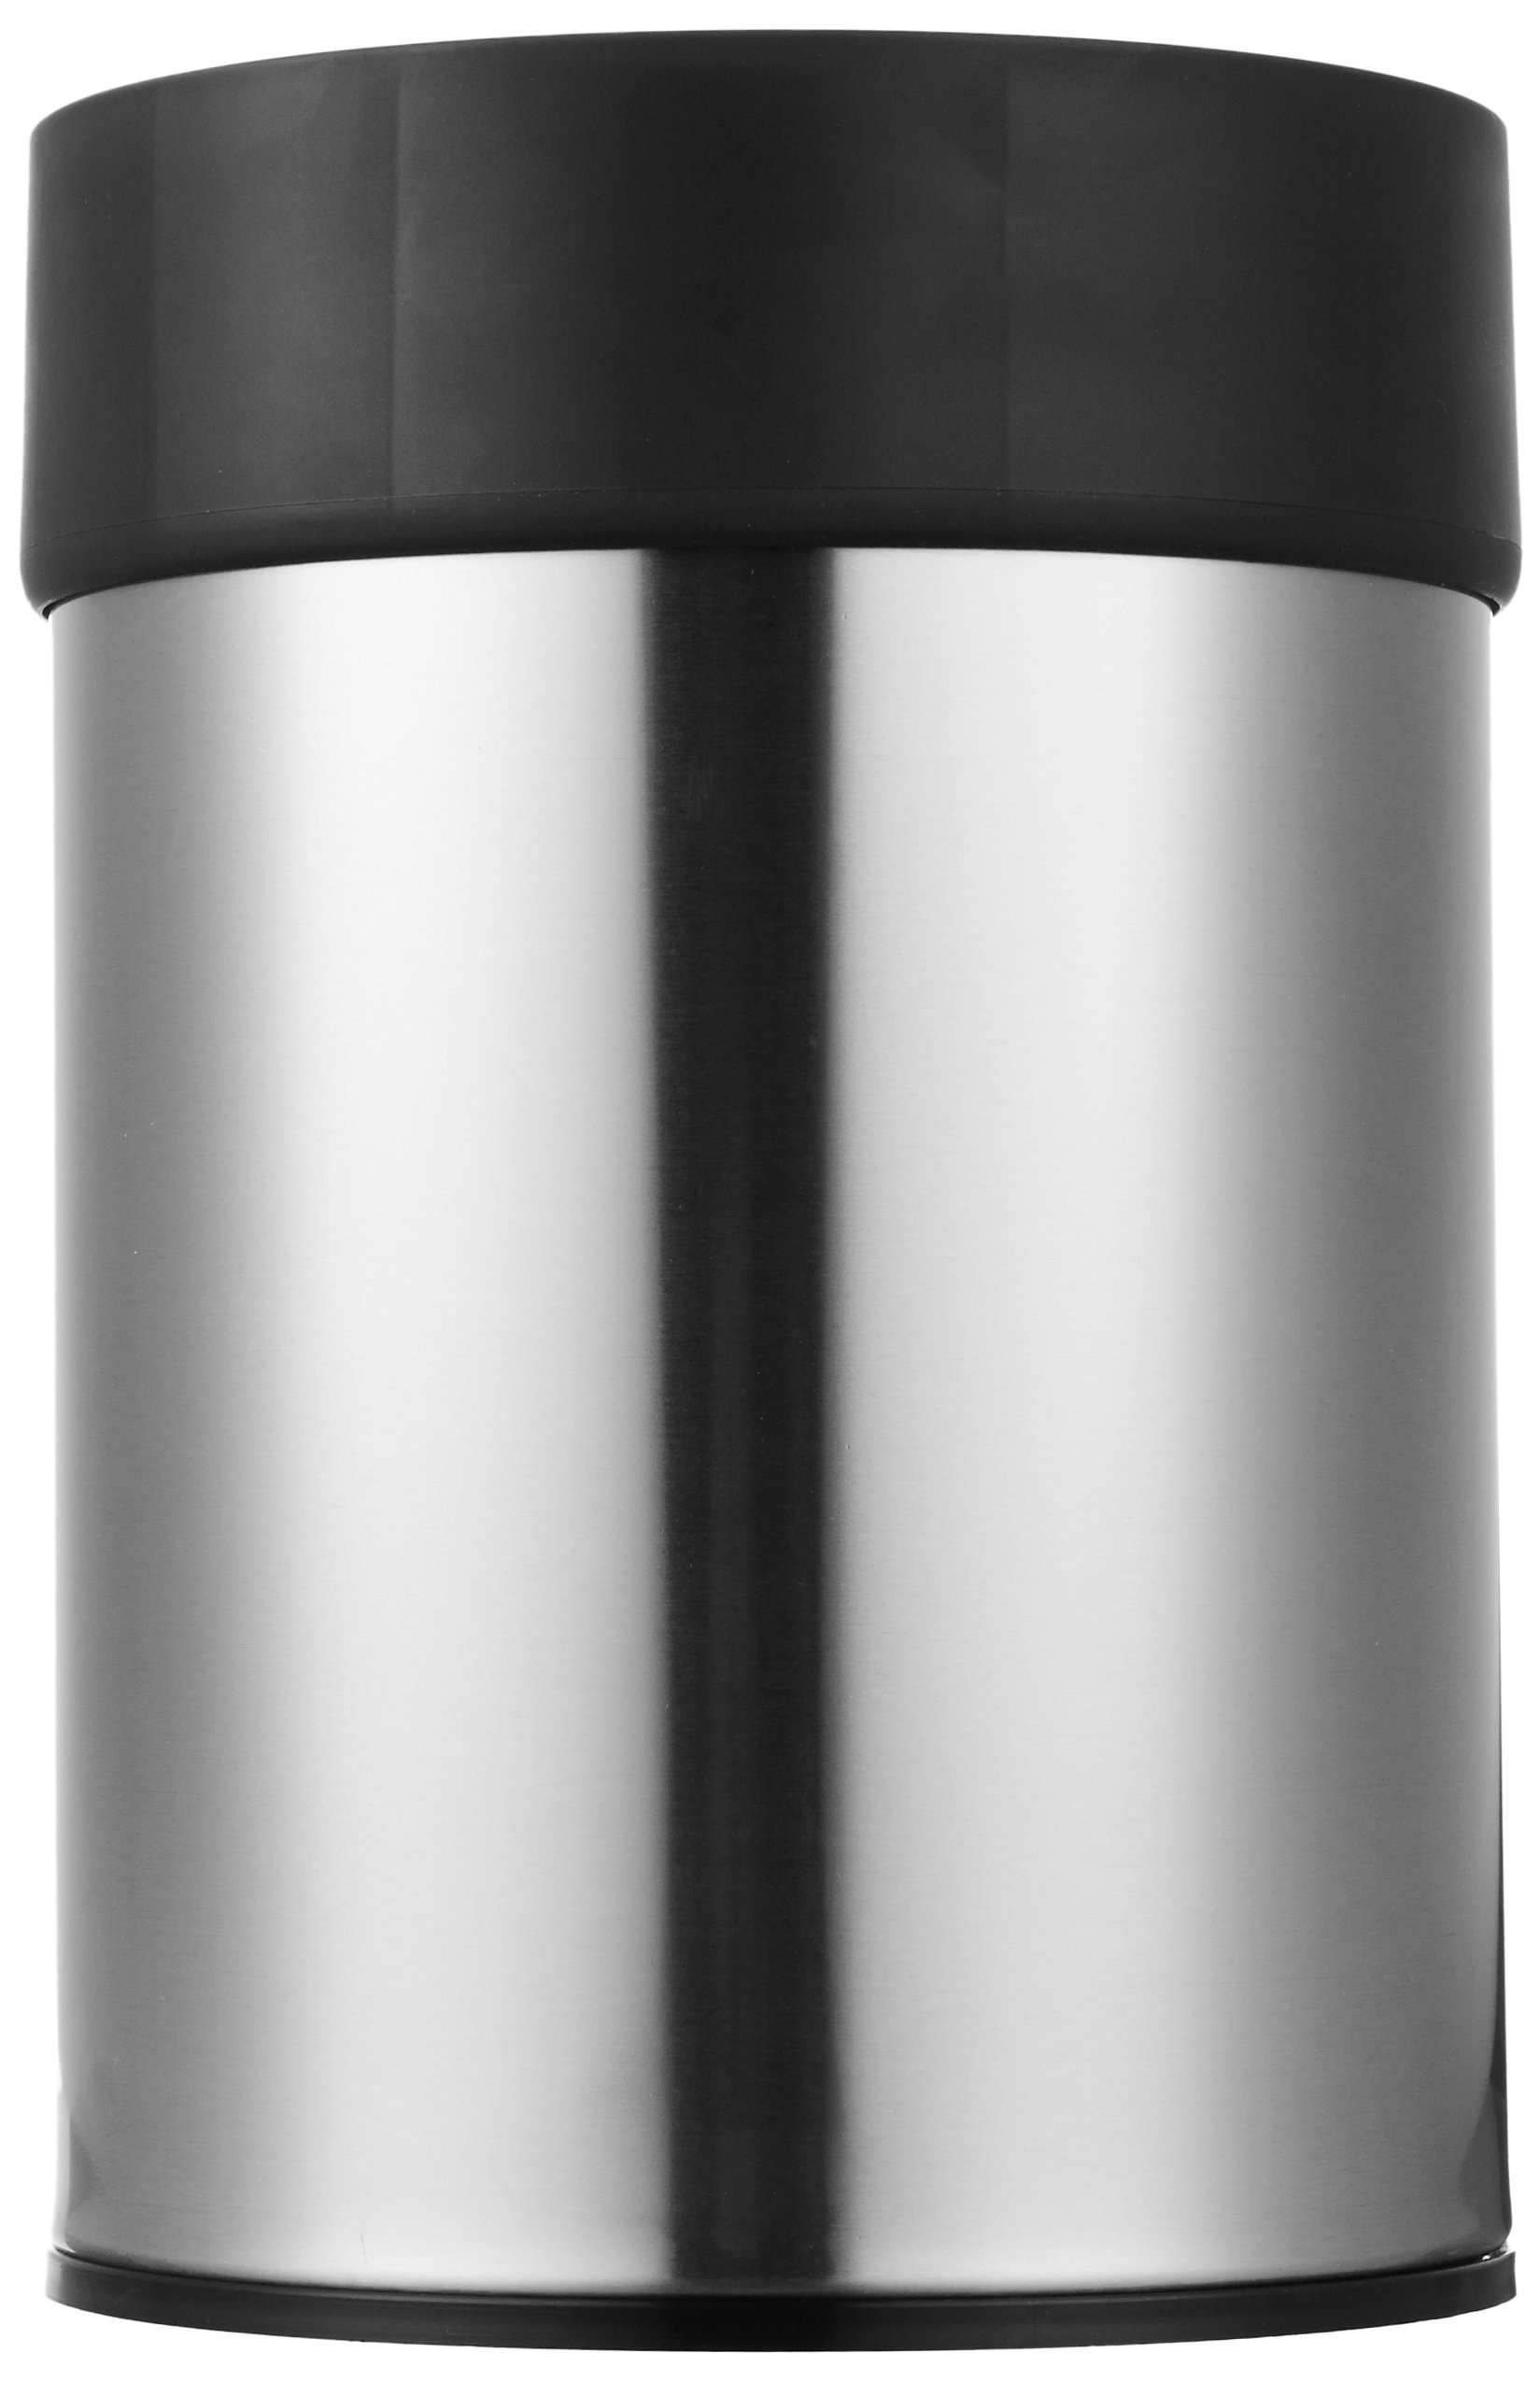 AmazonBasics Stainless Steel Trash Waste Can with Lid, Black by AmazonBasics